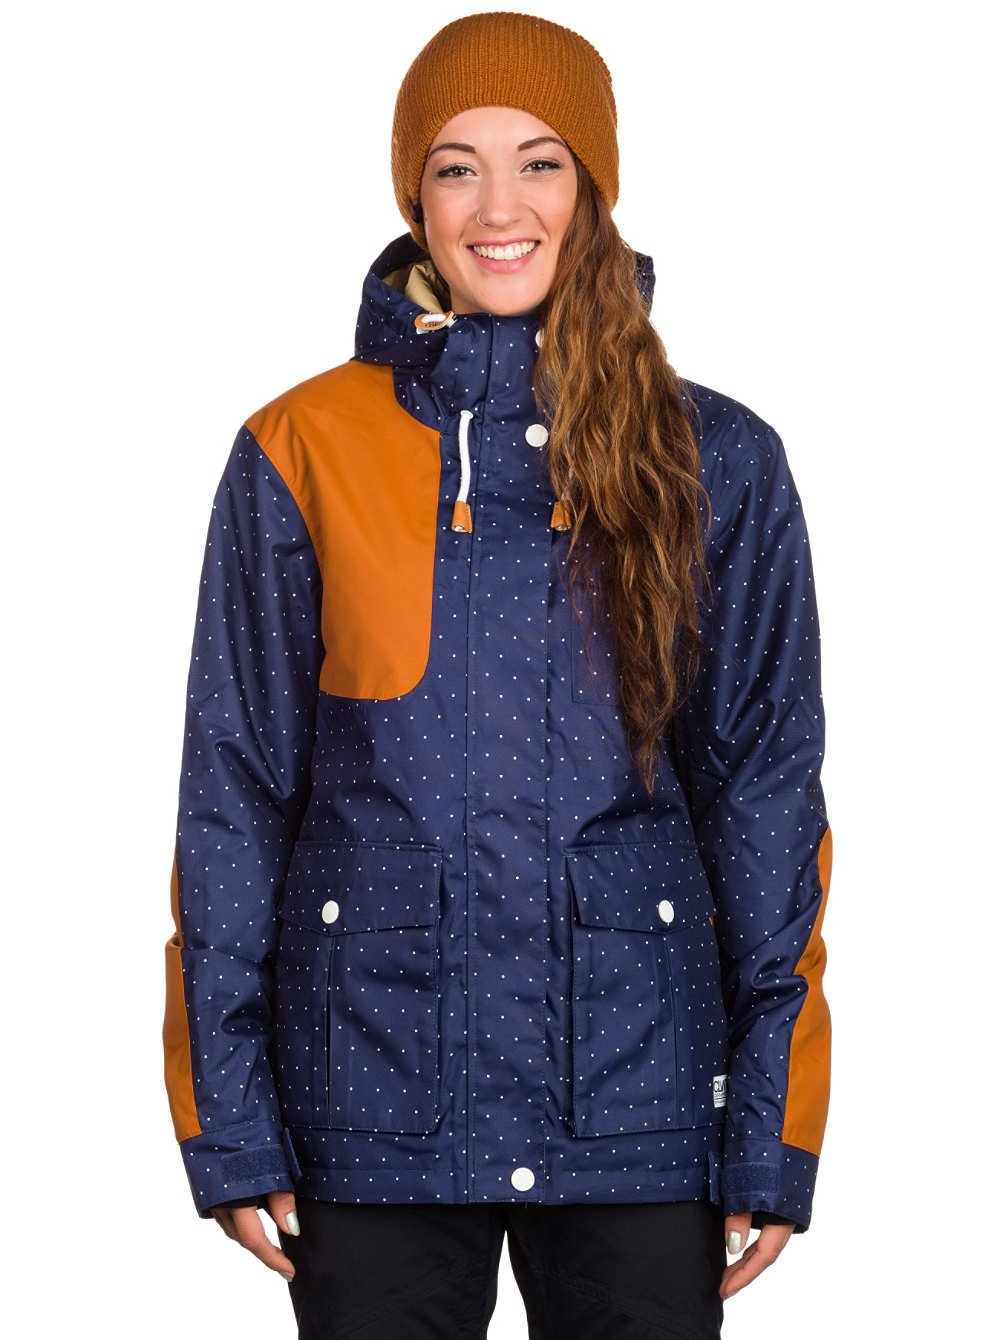 Damen Snowboard Jacke Colour Wear S Jacket günstig bestellen